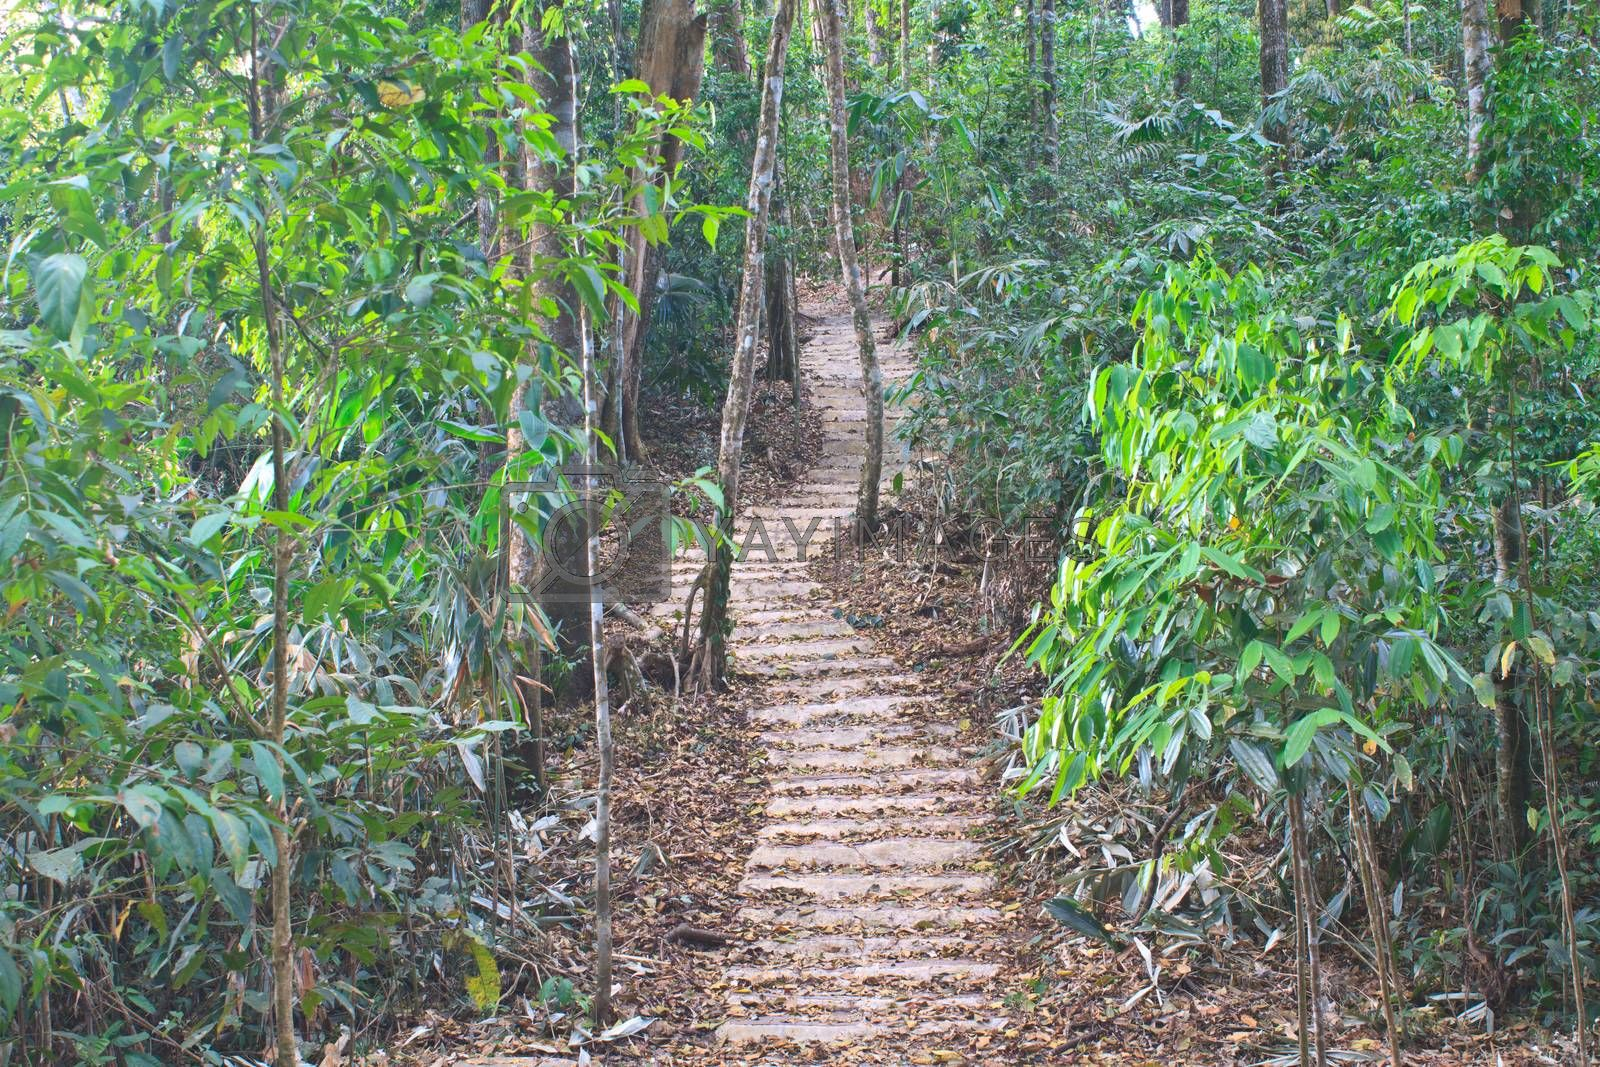 Stairway to jungle, in national park, Thailand